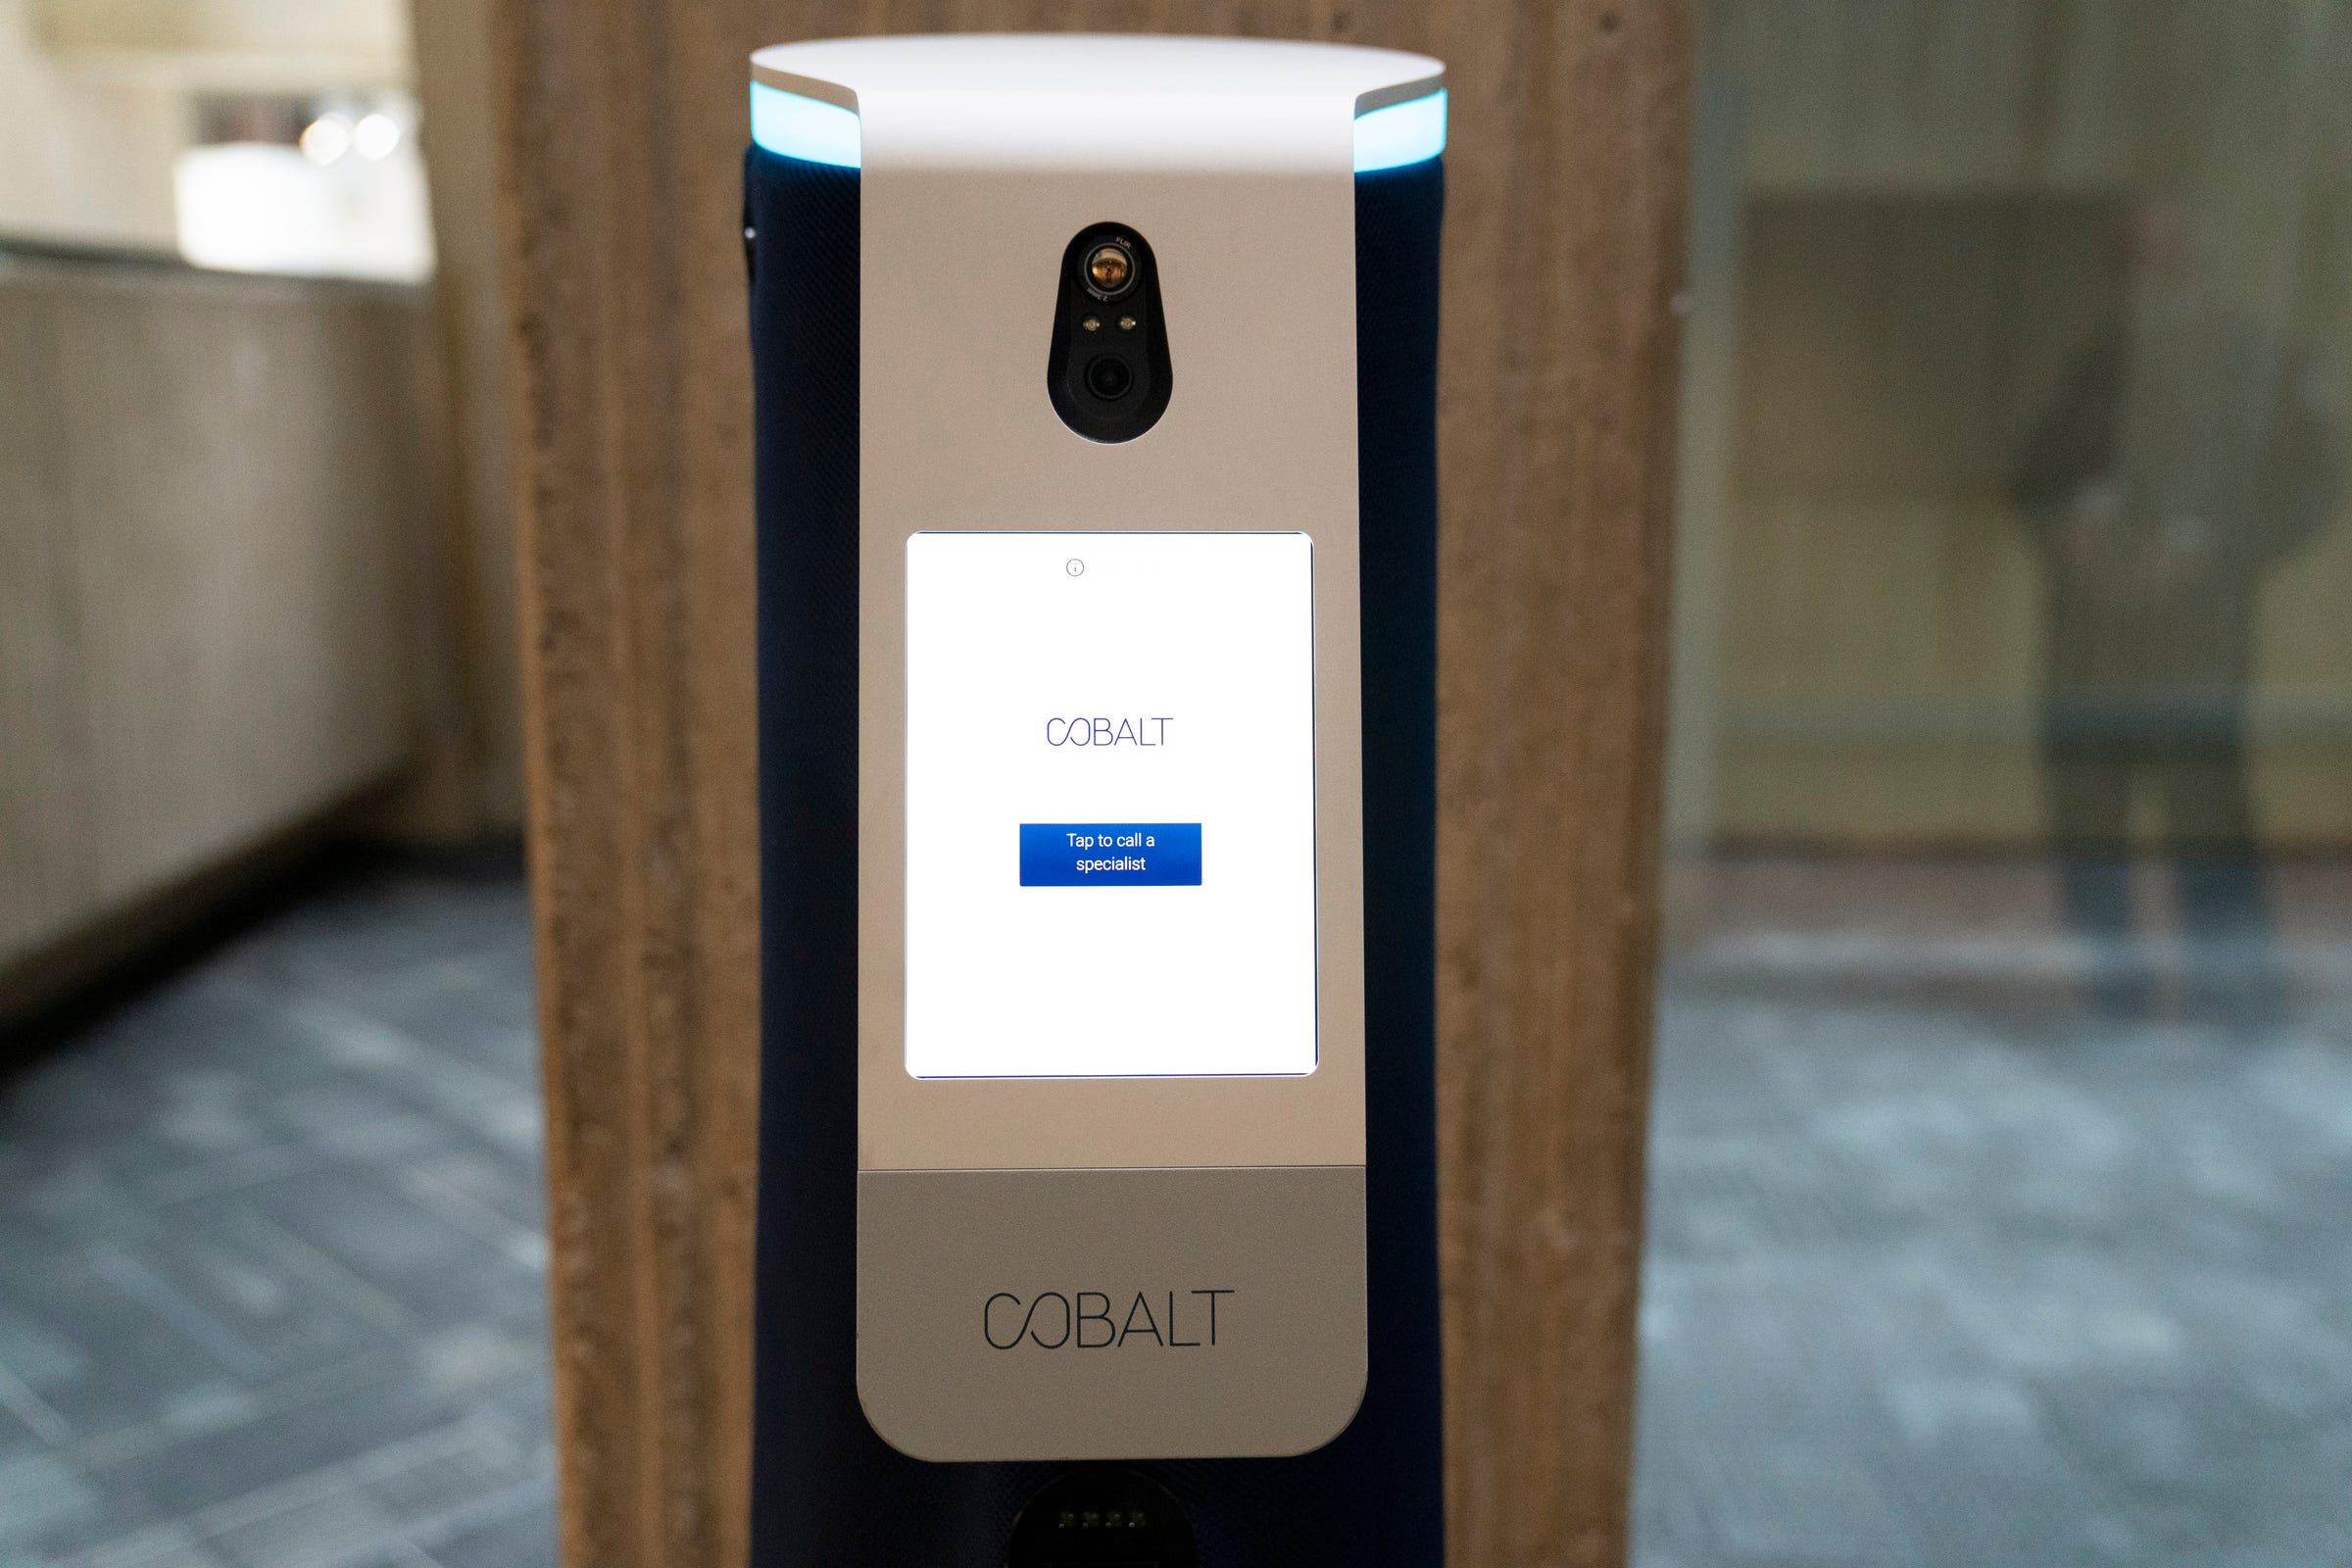 GM introducing robots in facilities to improve employee experiences